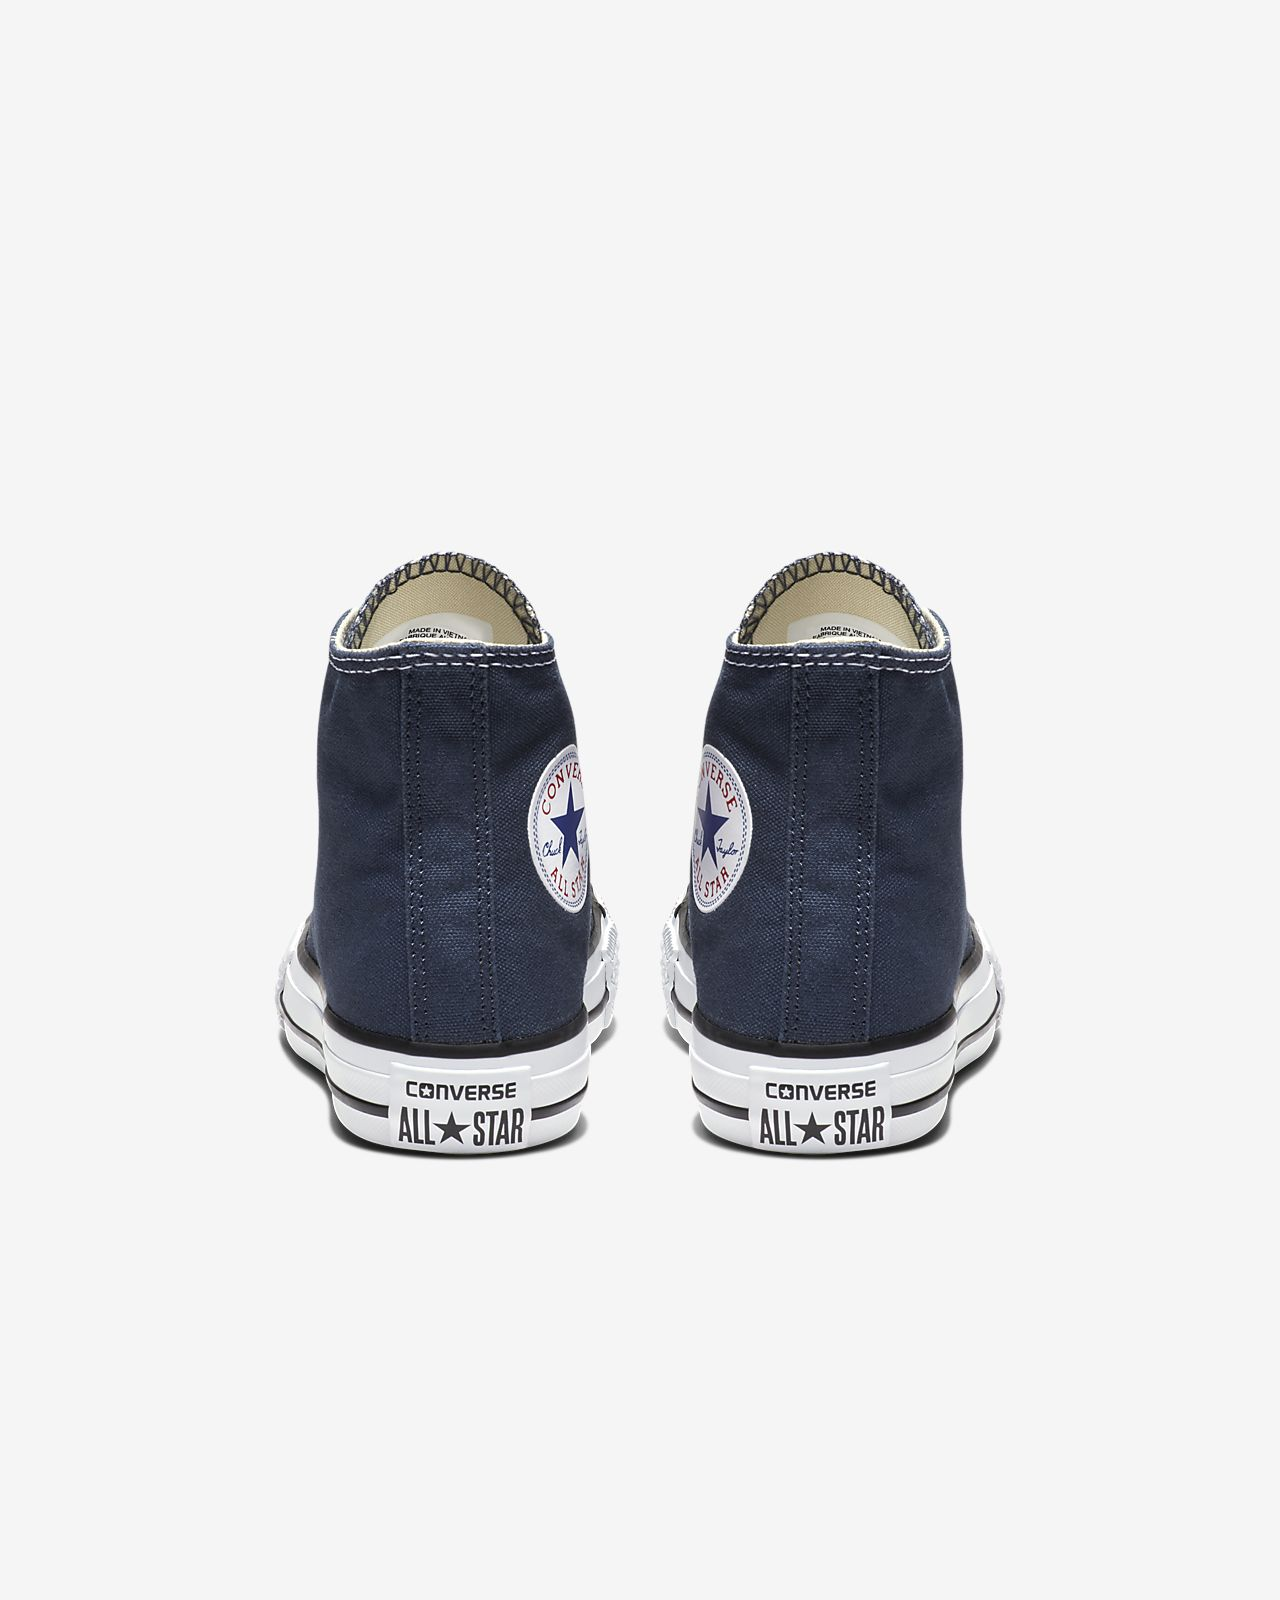 9a90a5410c1ea3 Converse Chuck Taylor All Star High Top (10.5c-3y) Little Kids  Shoe ...